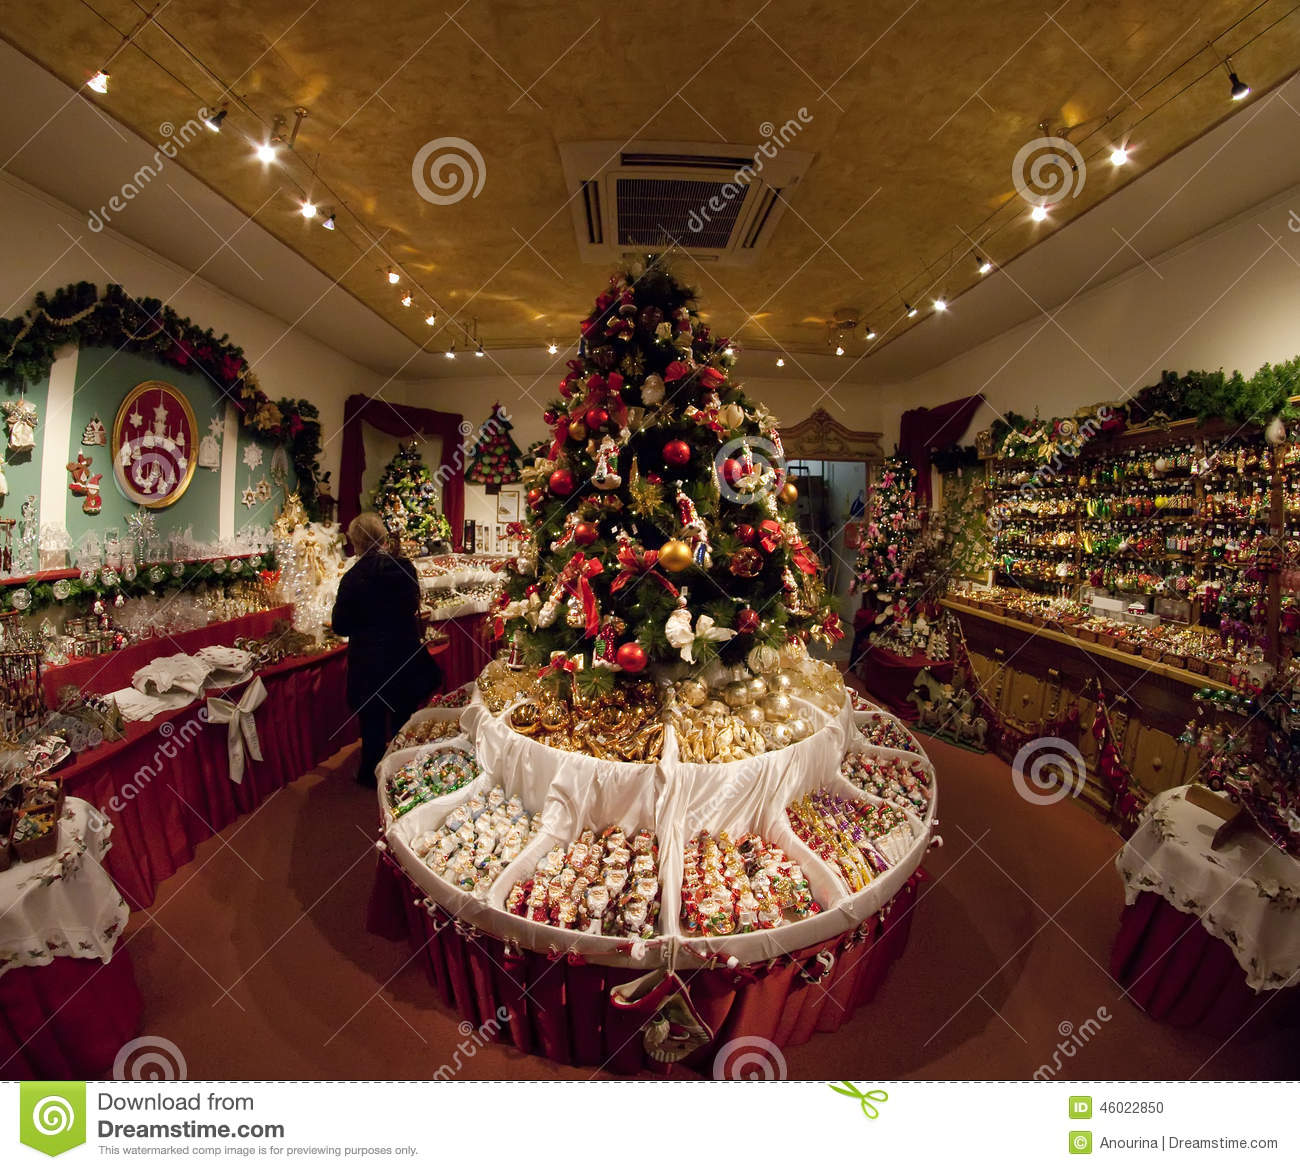 Christmas Decoration Stores: Shop With Christmas Decorations Editorial Image